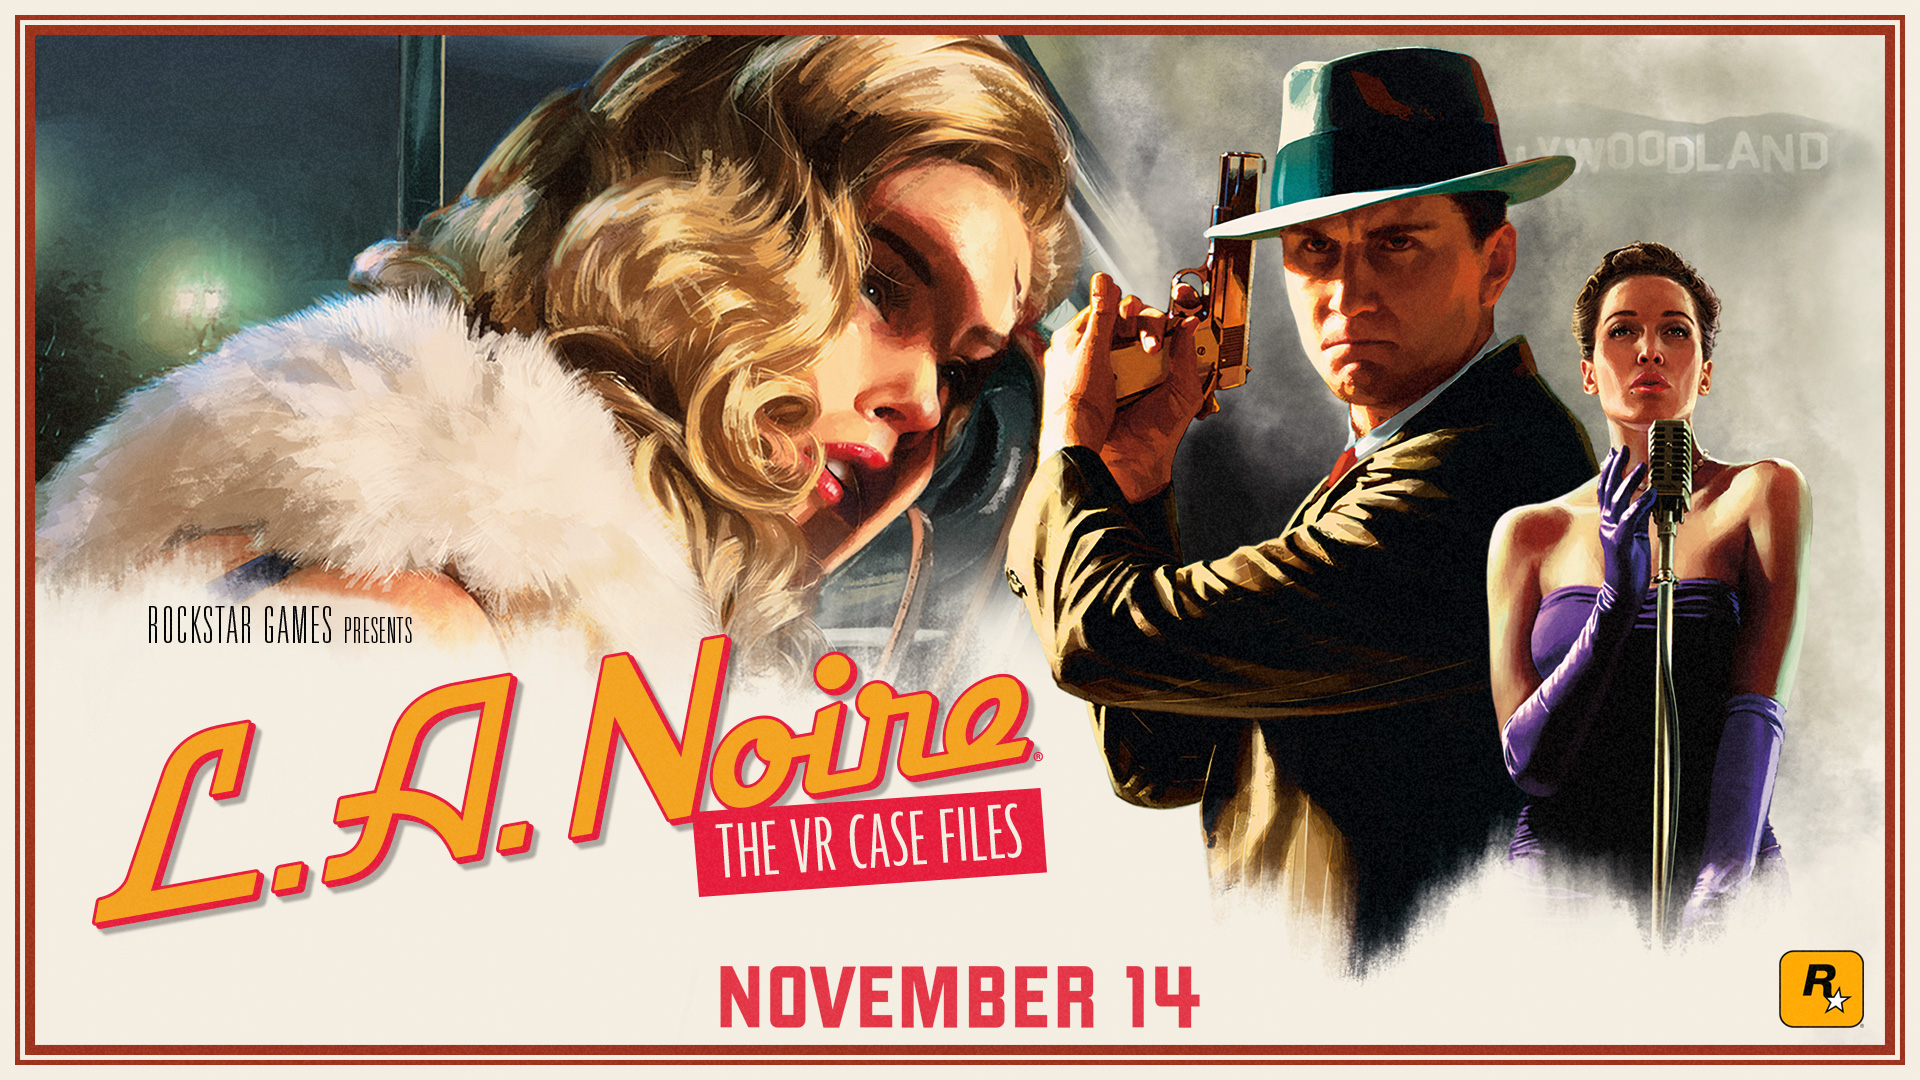 LA Noire is coming to HTC Vive and current generation consoles